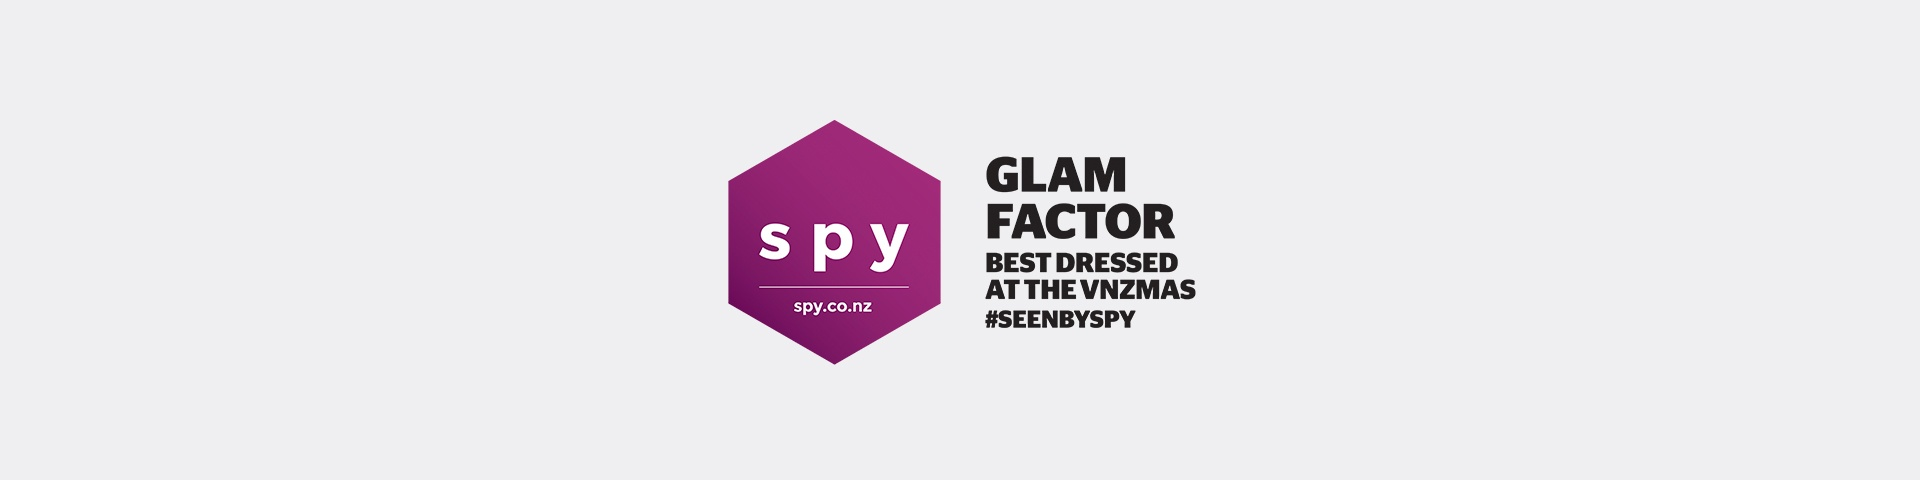 Spying in style at the Vodafone NZ Music Awards